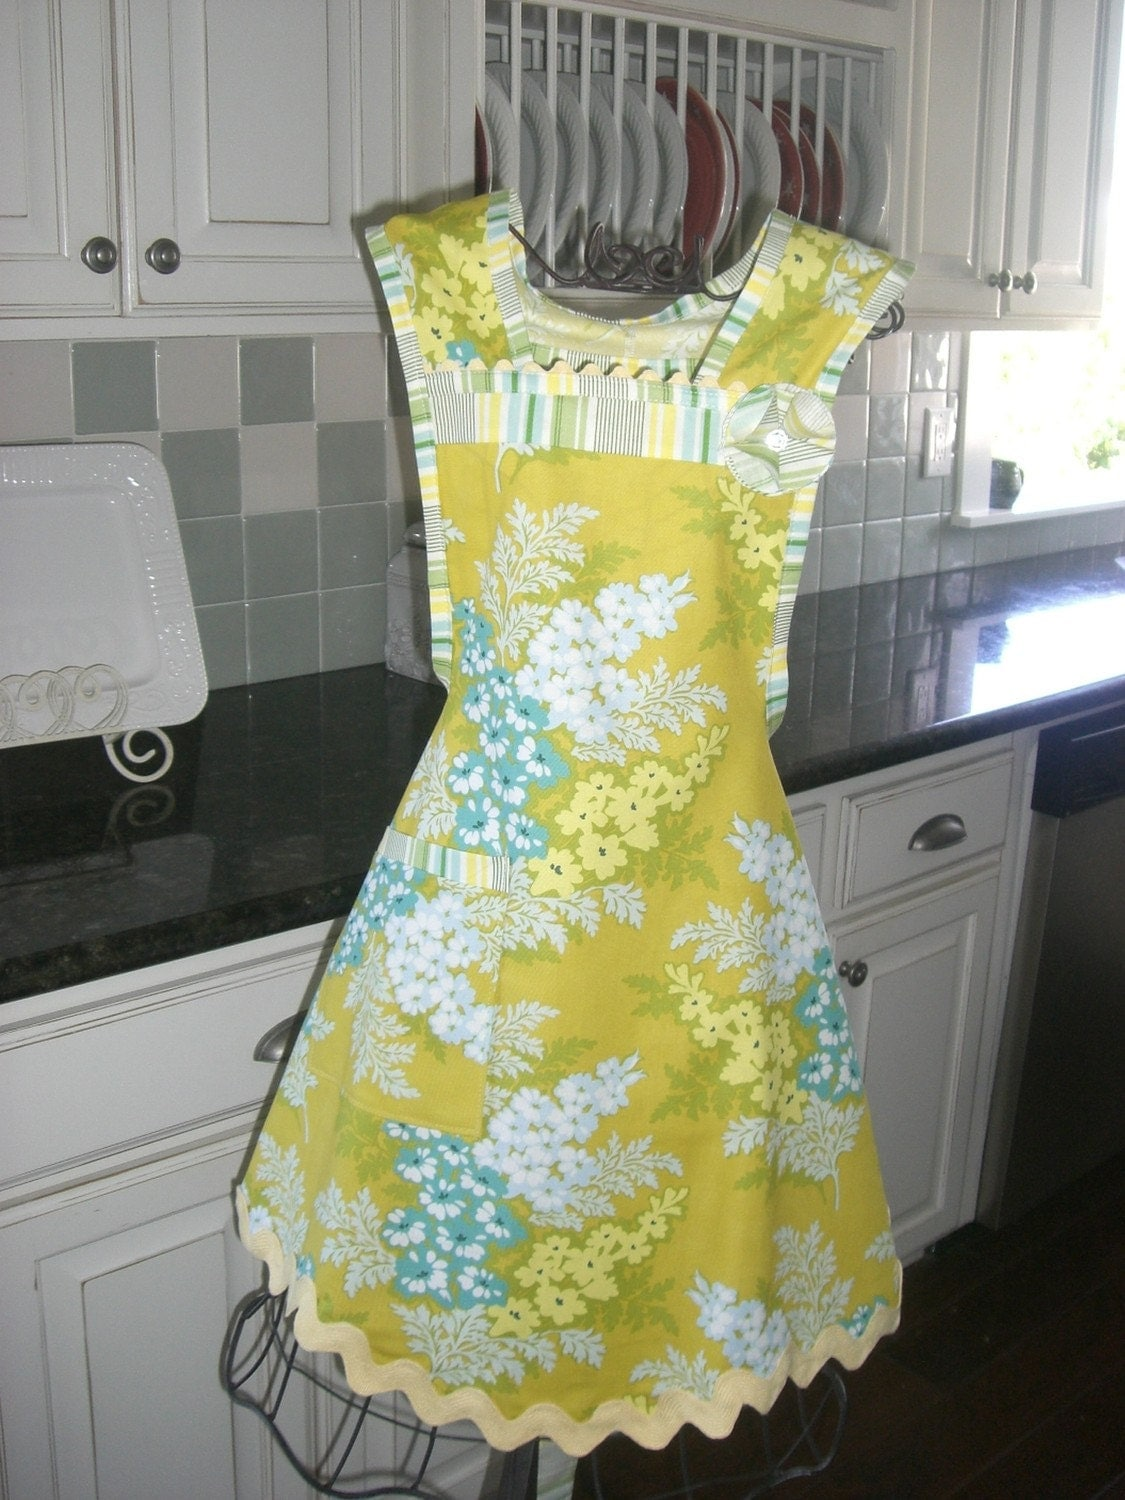 Retro Womens Kitchen Apron by 4RetroSisters Vintage and Retro Inspired